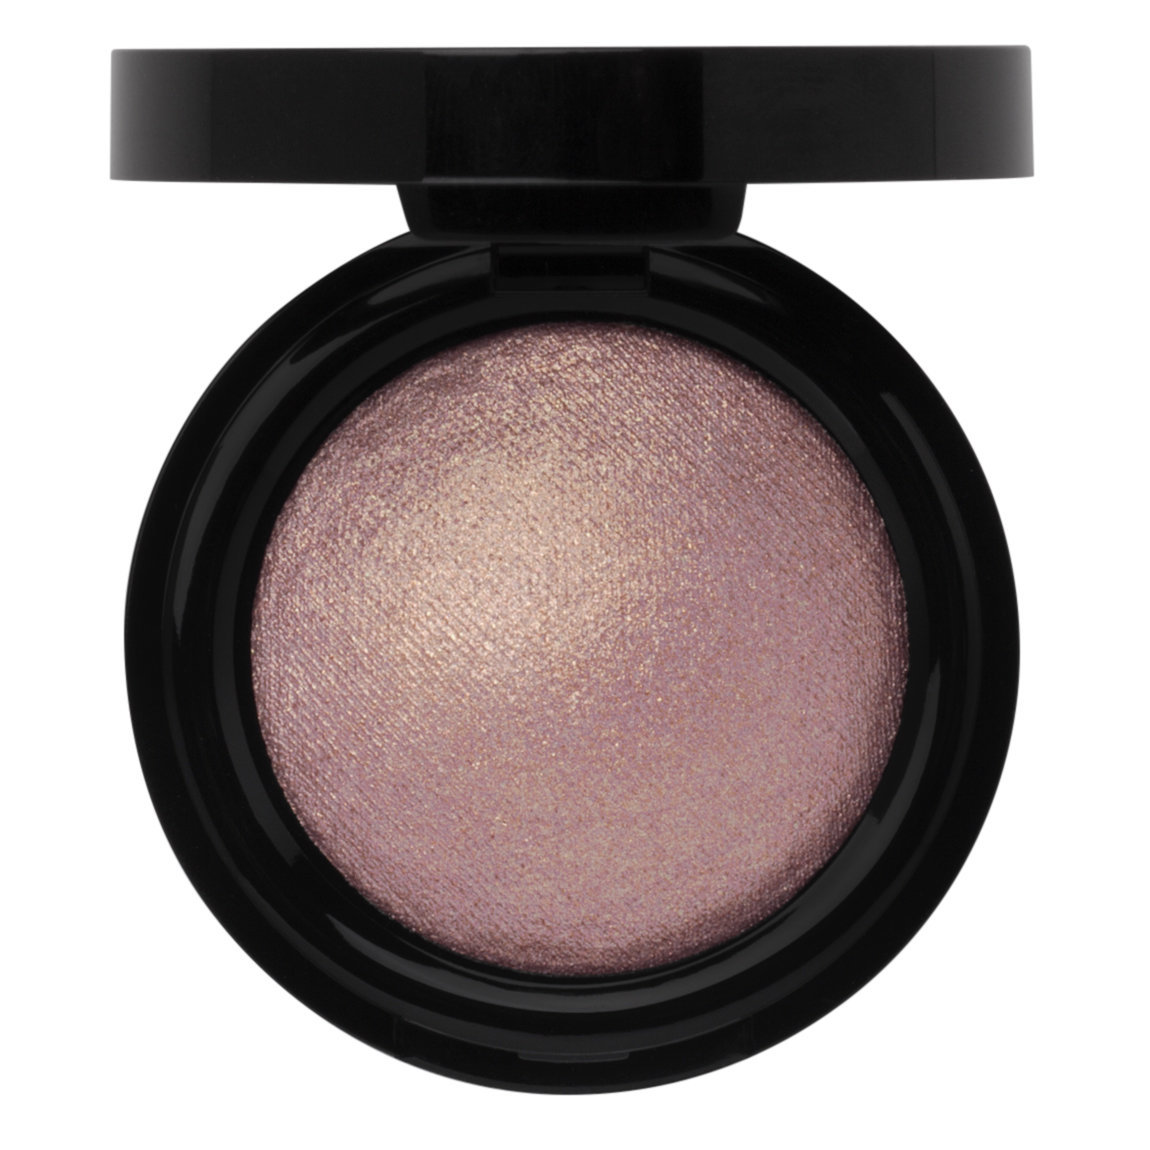 Inglot Cosmetics Intense Sparkler Face Eyes Body Highlighter 11 product smear.